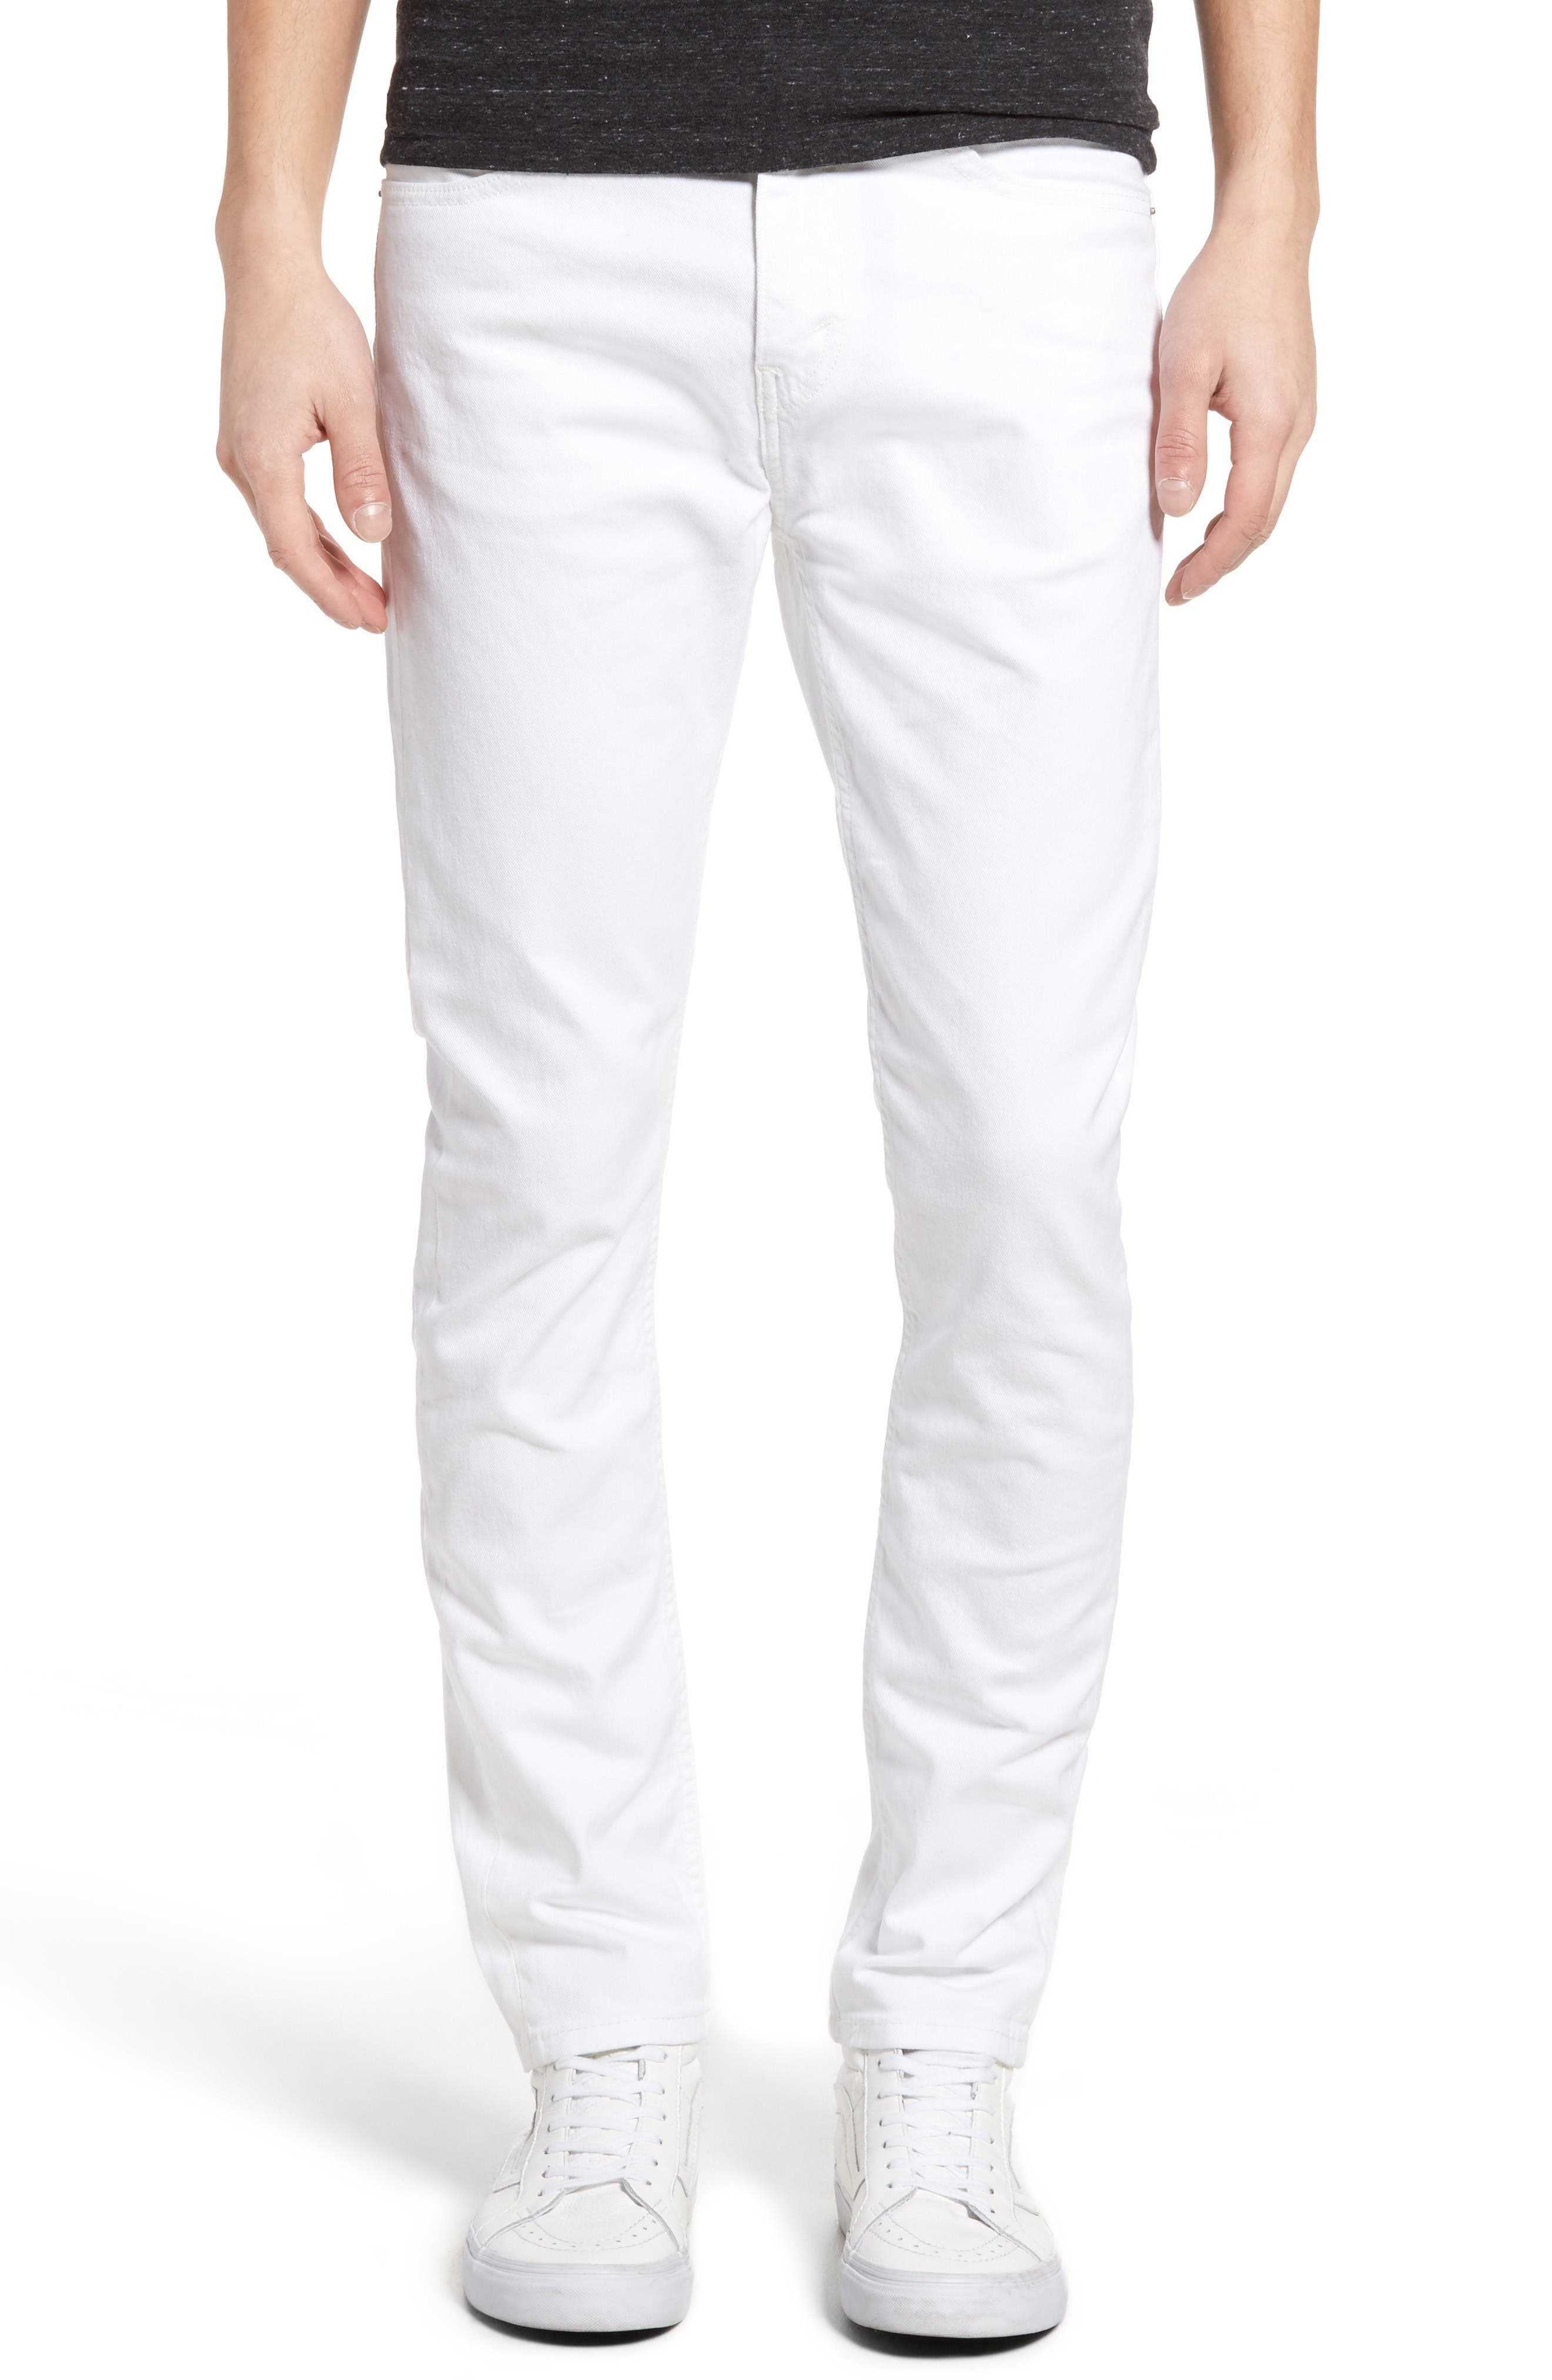 510<sup>®</sup> Skinny Fit Jeans,                         Main,                         color, White Bull Denim